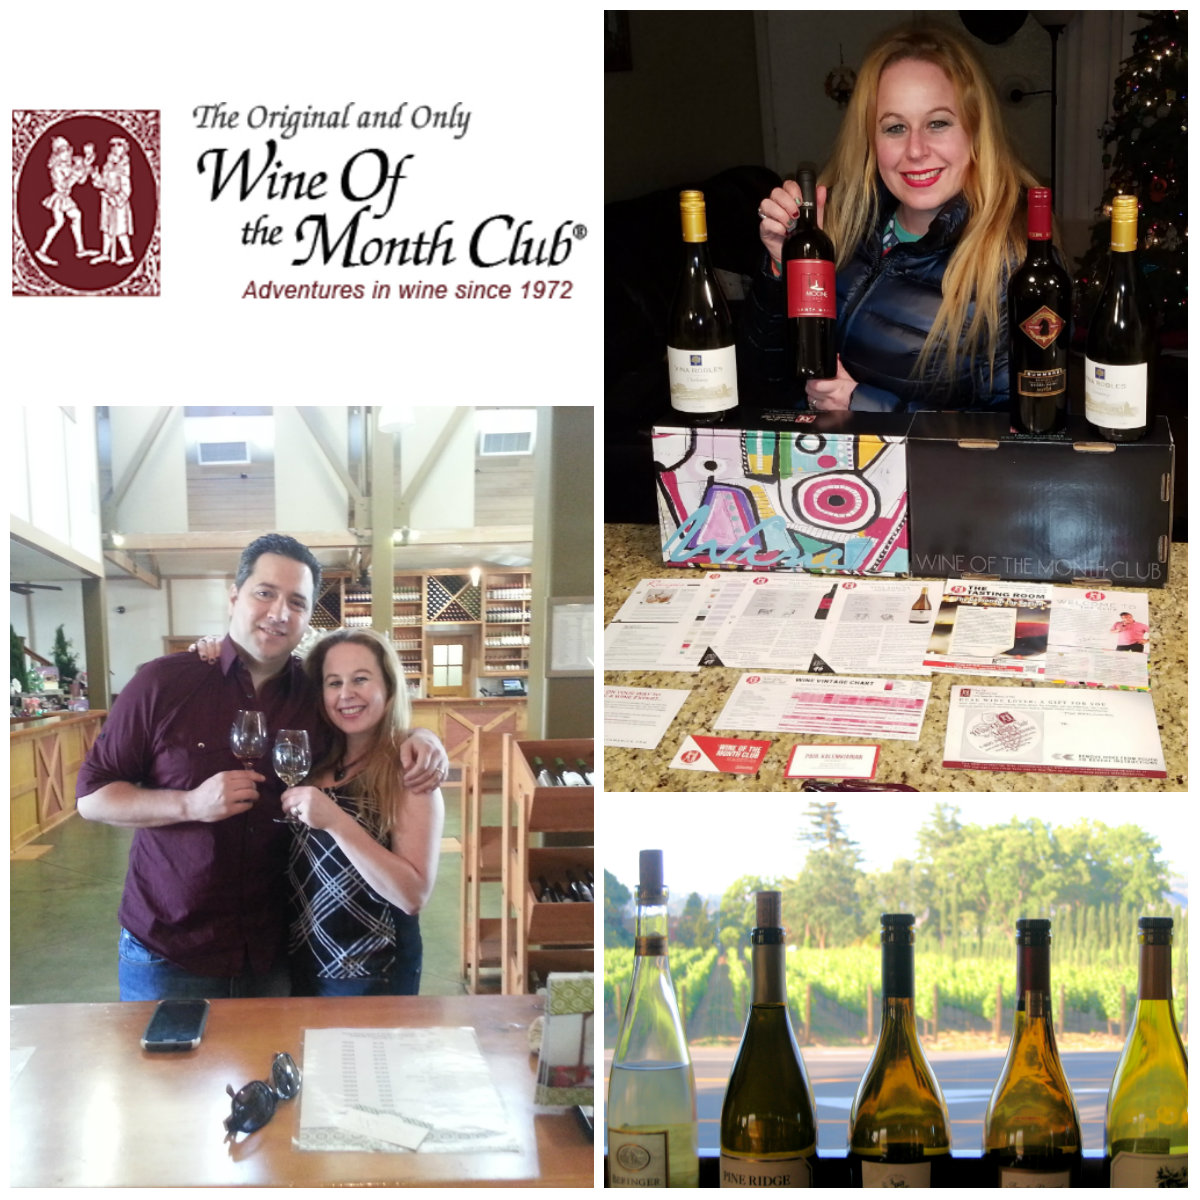 Wine of the month club, wine